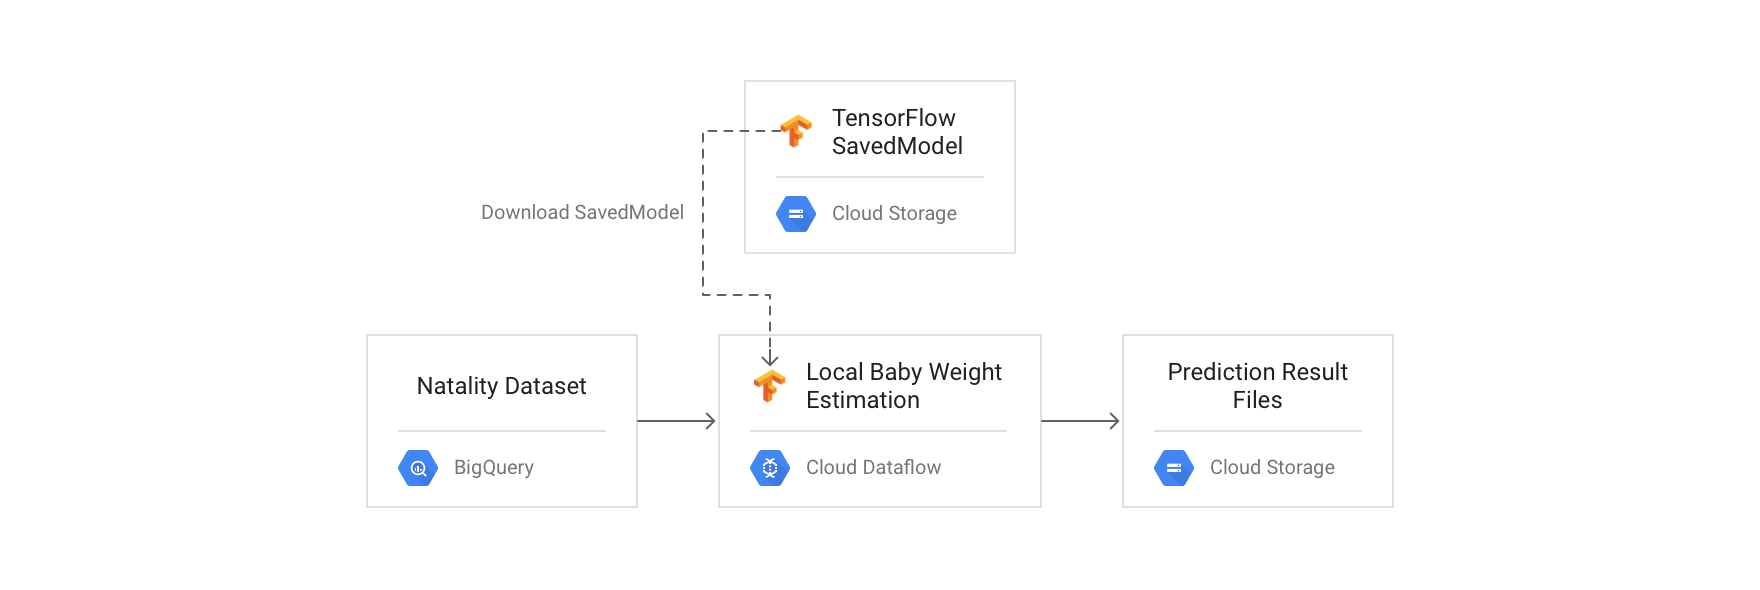 Batch Approach 1: Dataflow with direct model prediction